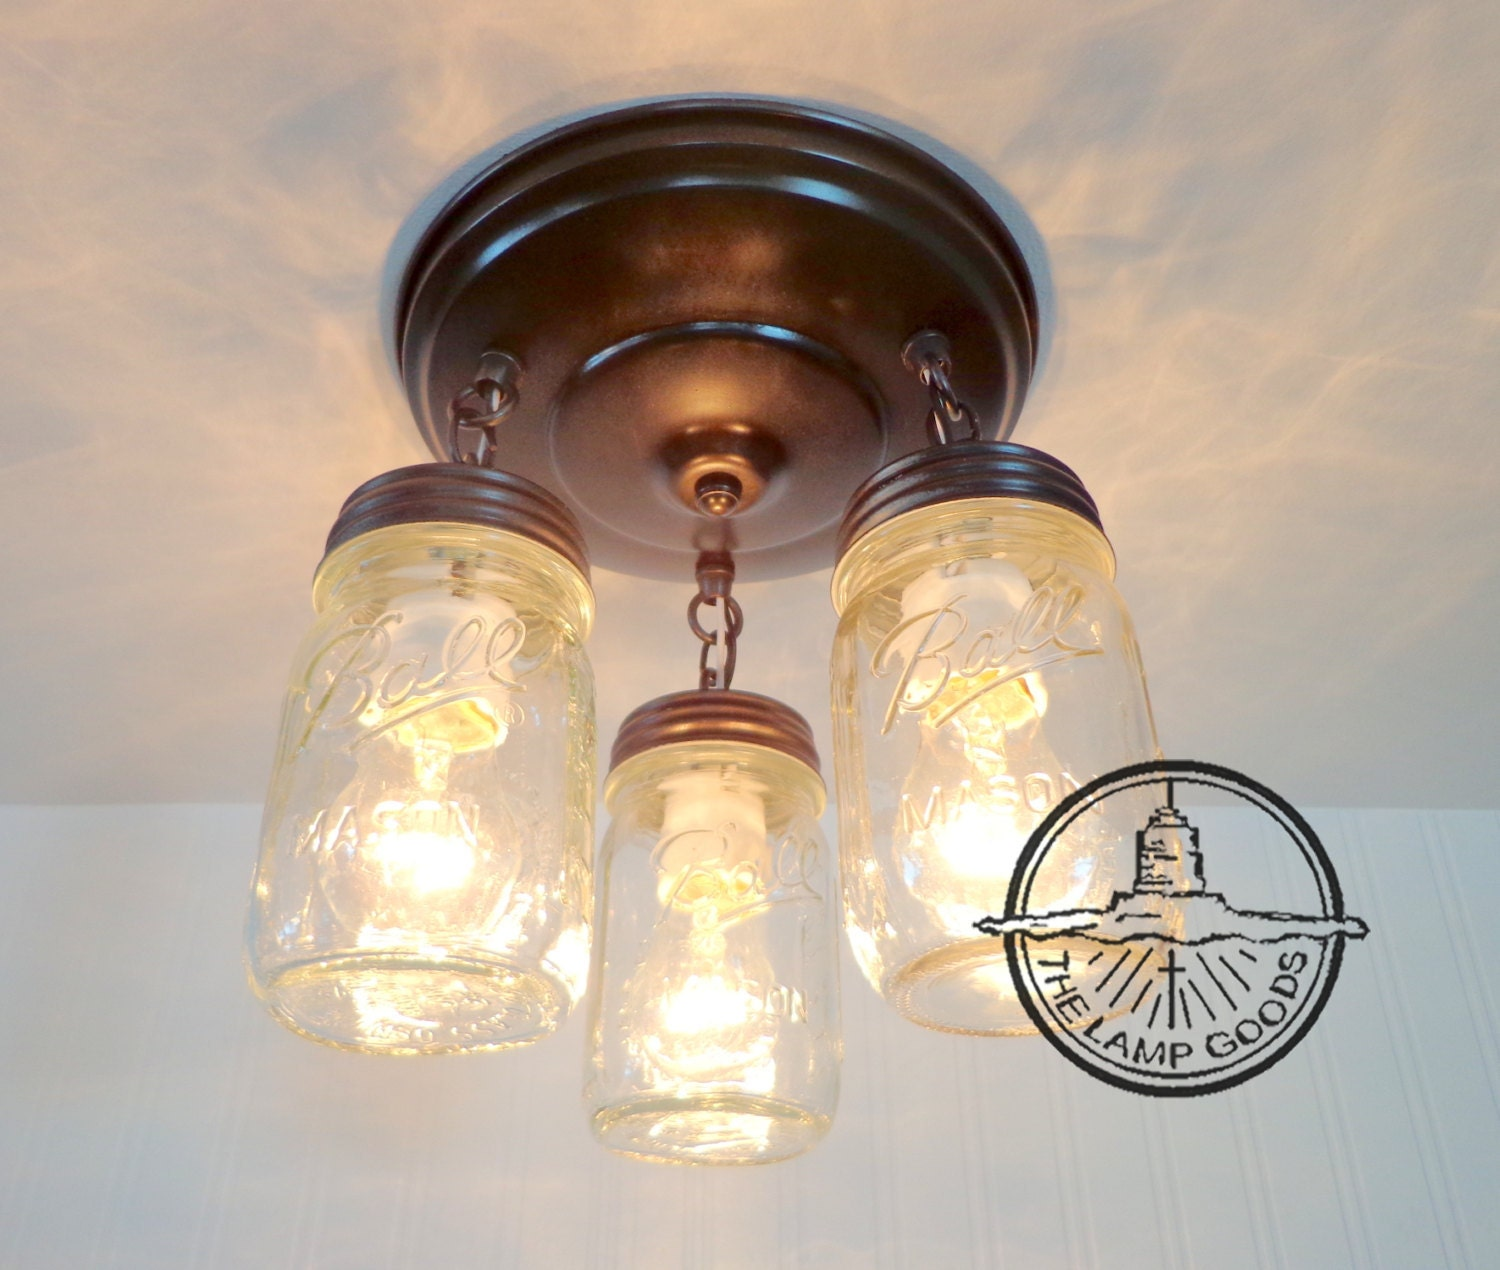 mason jar light fixture new pint trio flush mount farmhouse. Black Bedroom Furniture Sets. Home Design Ideas